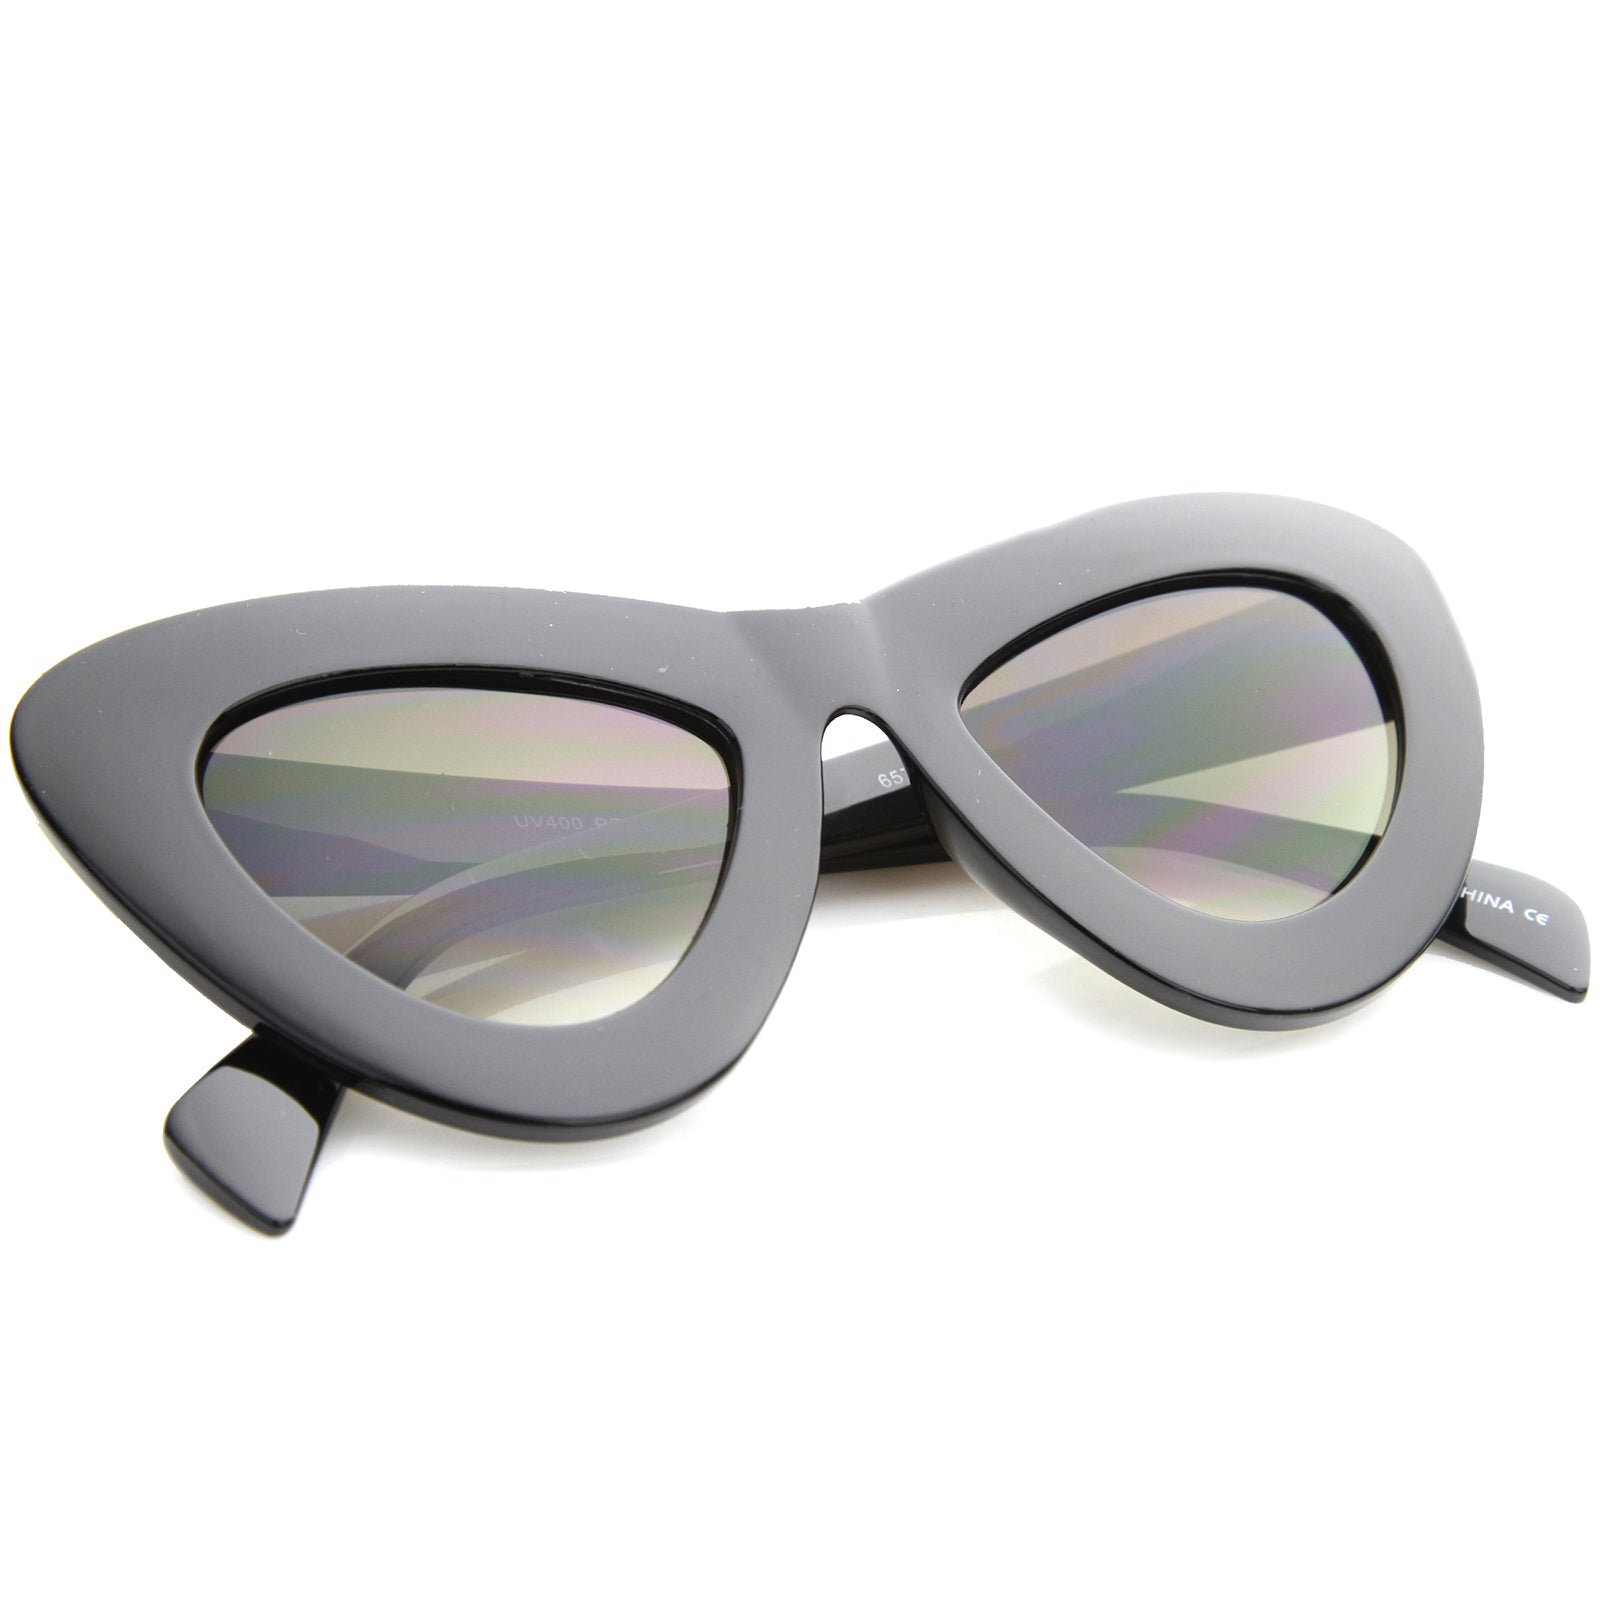 Womens Cat Eye Sunglasses With UV400 Protected Composite Lens - sunglass.la - 4